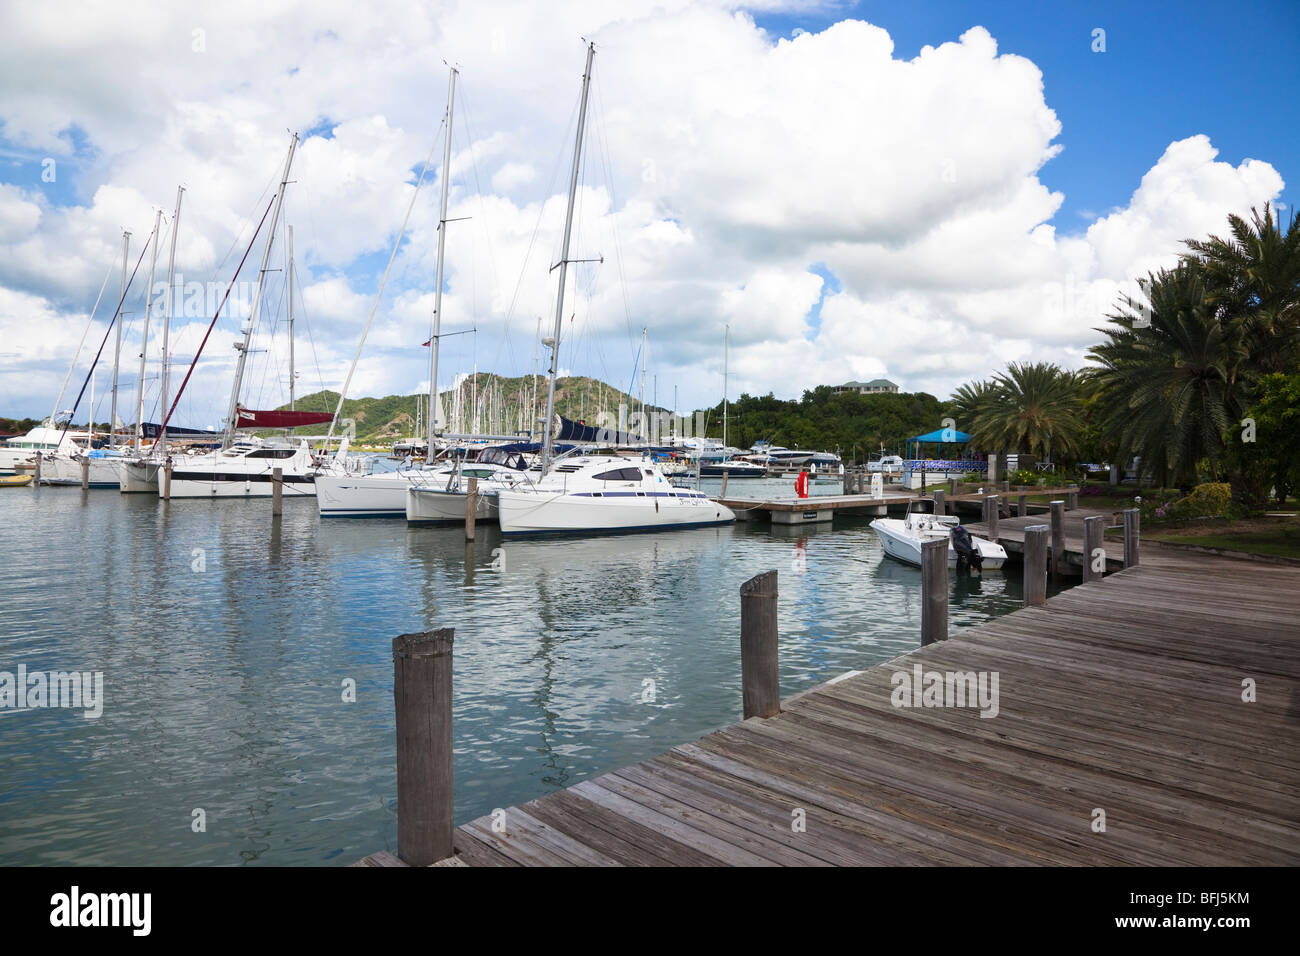 Yachts in marina at Jolly Harbour, Antigua, West Indies - Stock Image